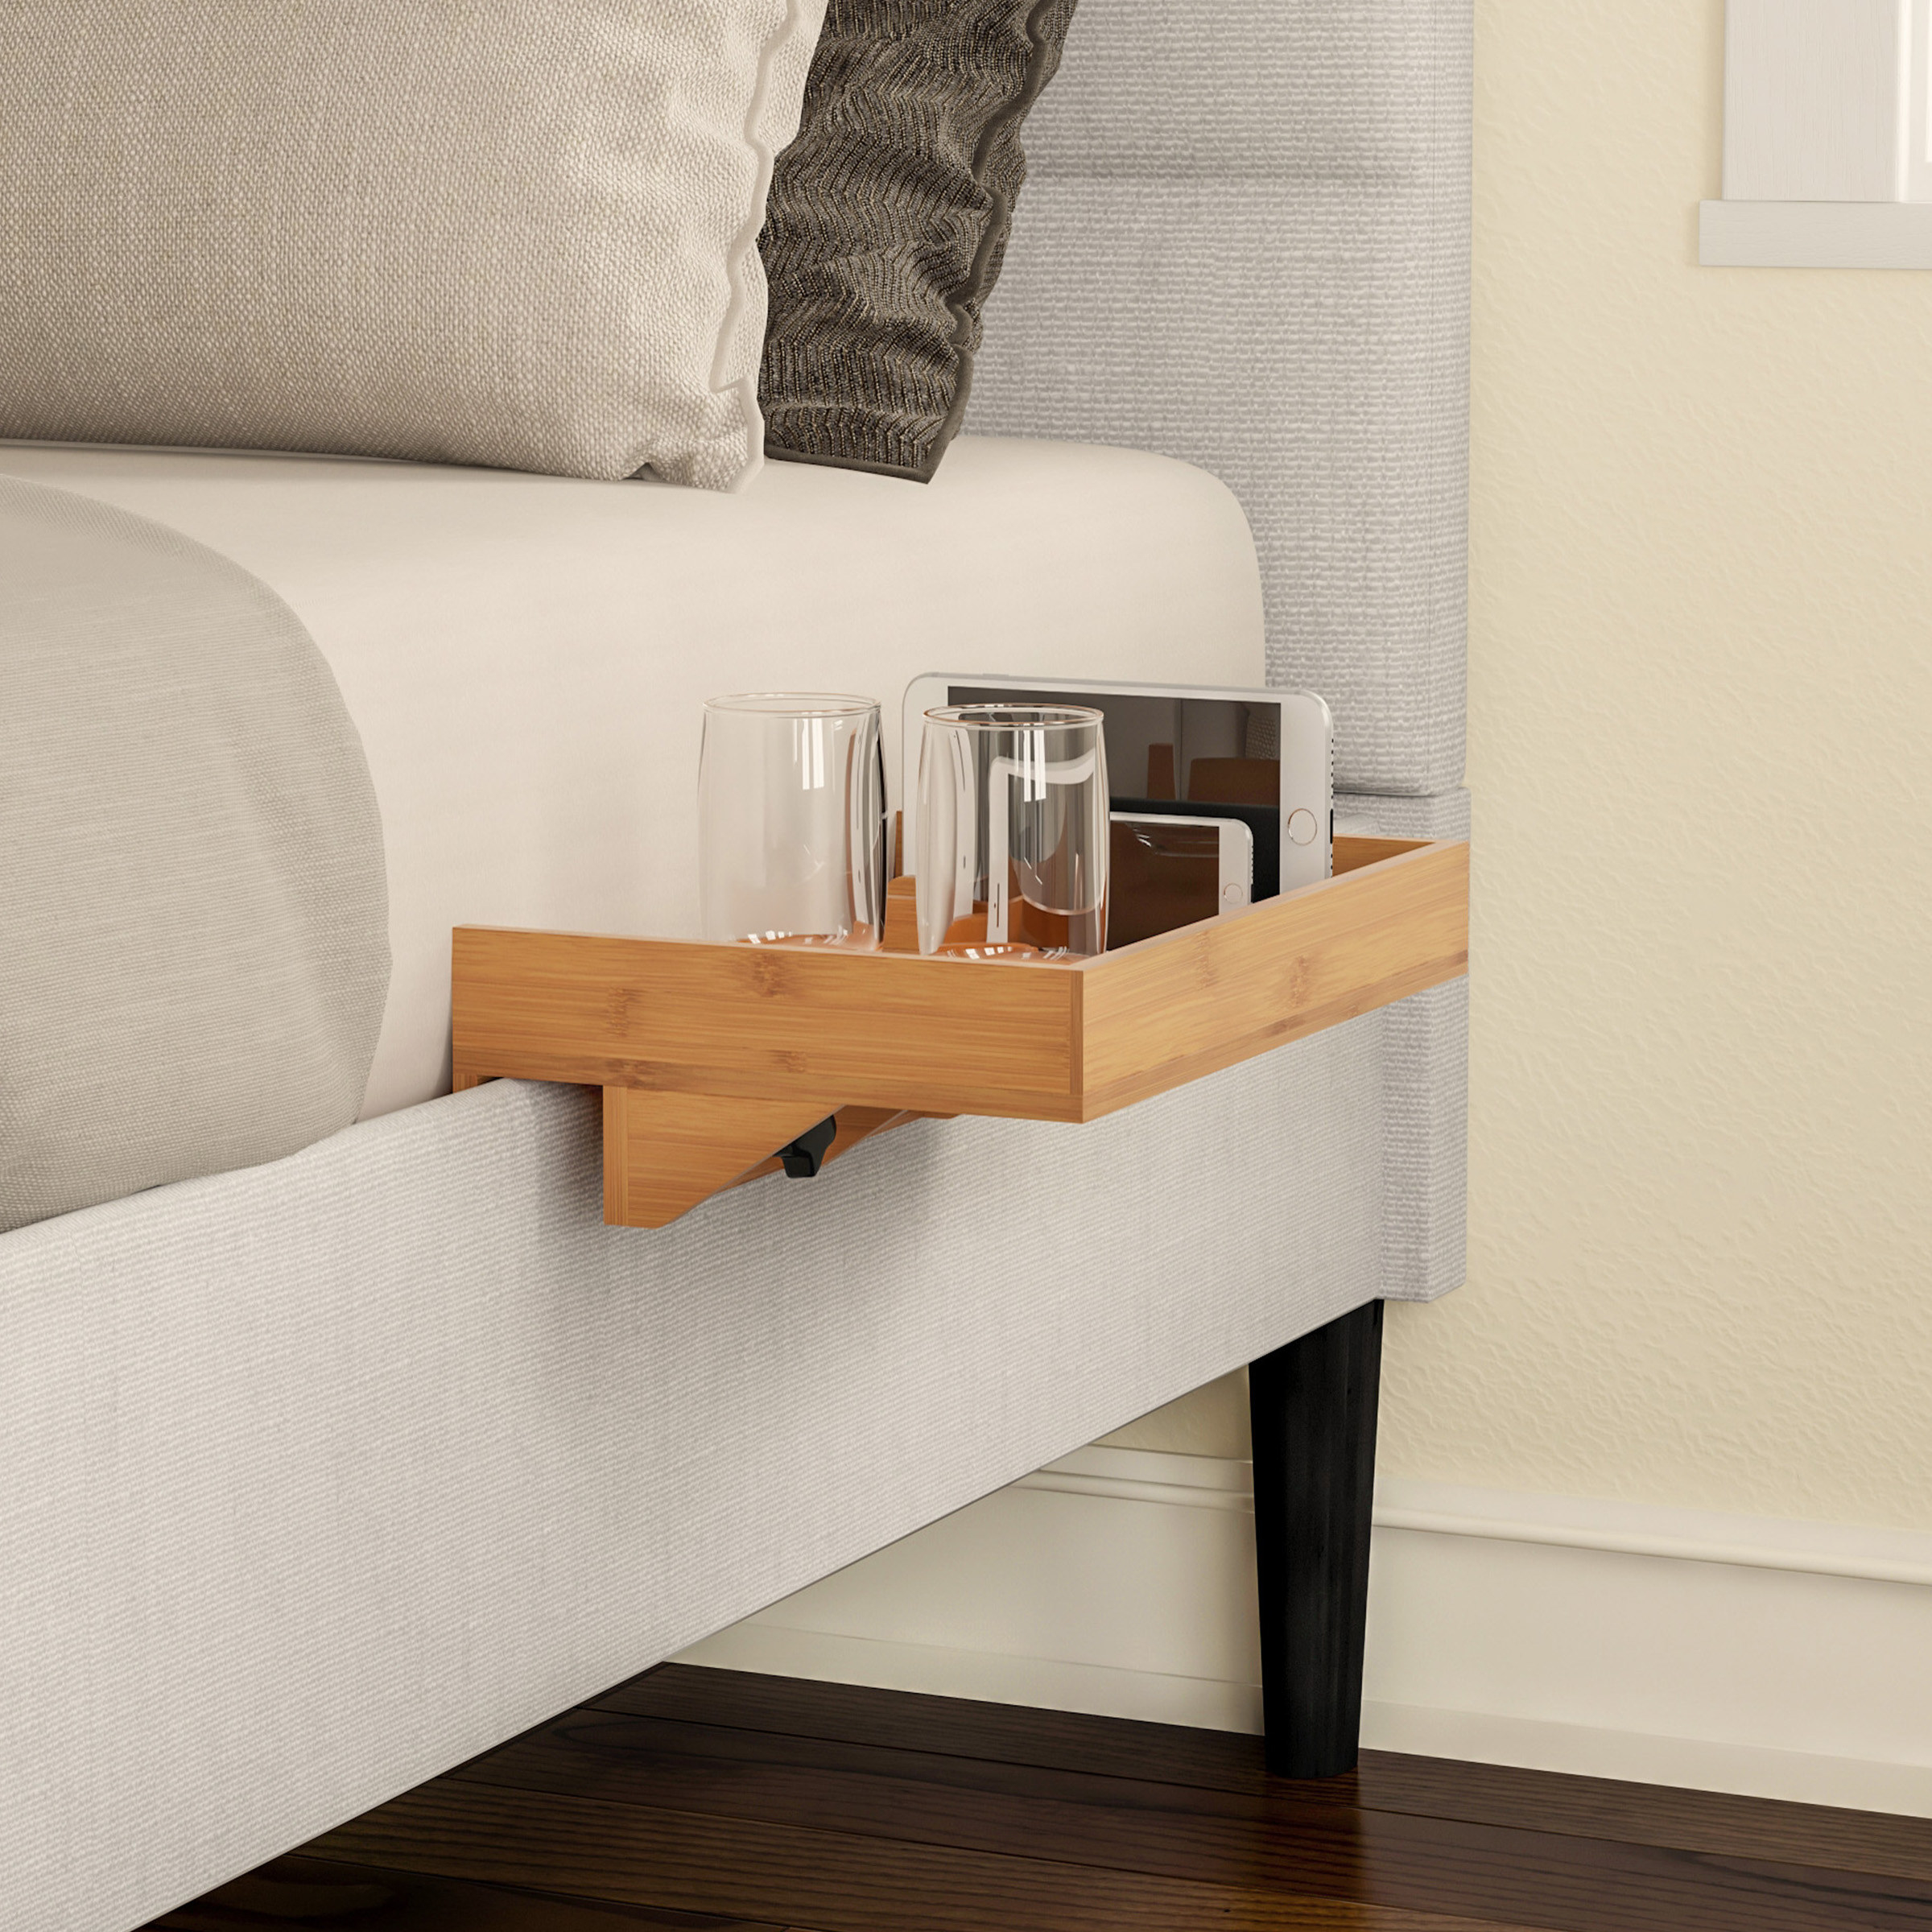 Clamp on bedside tray organizer